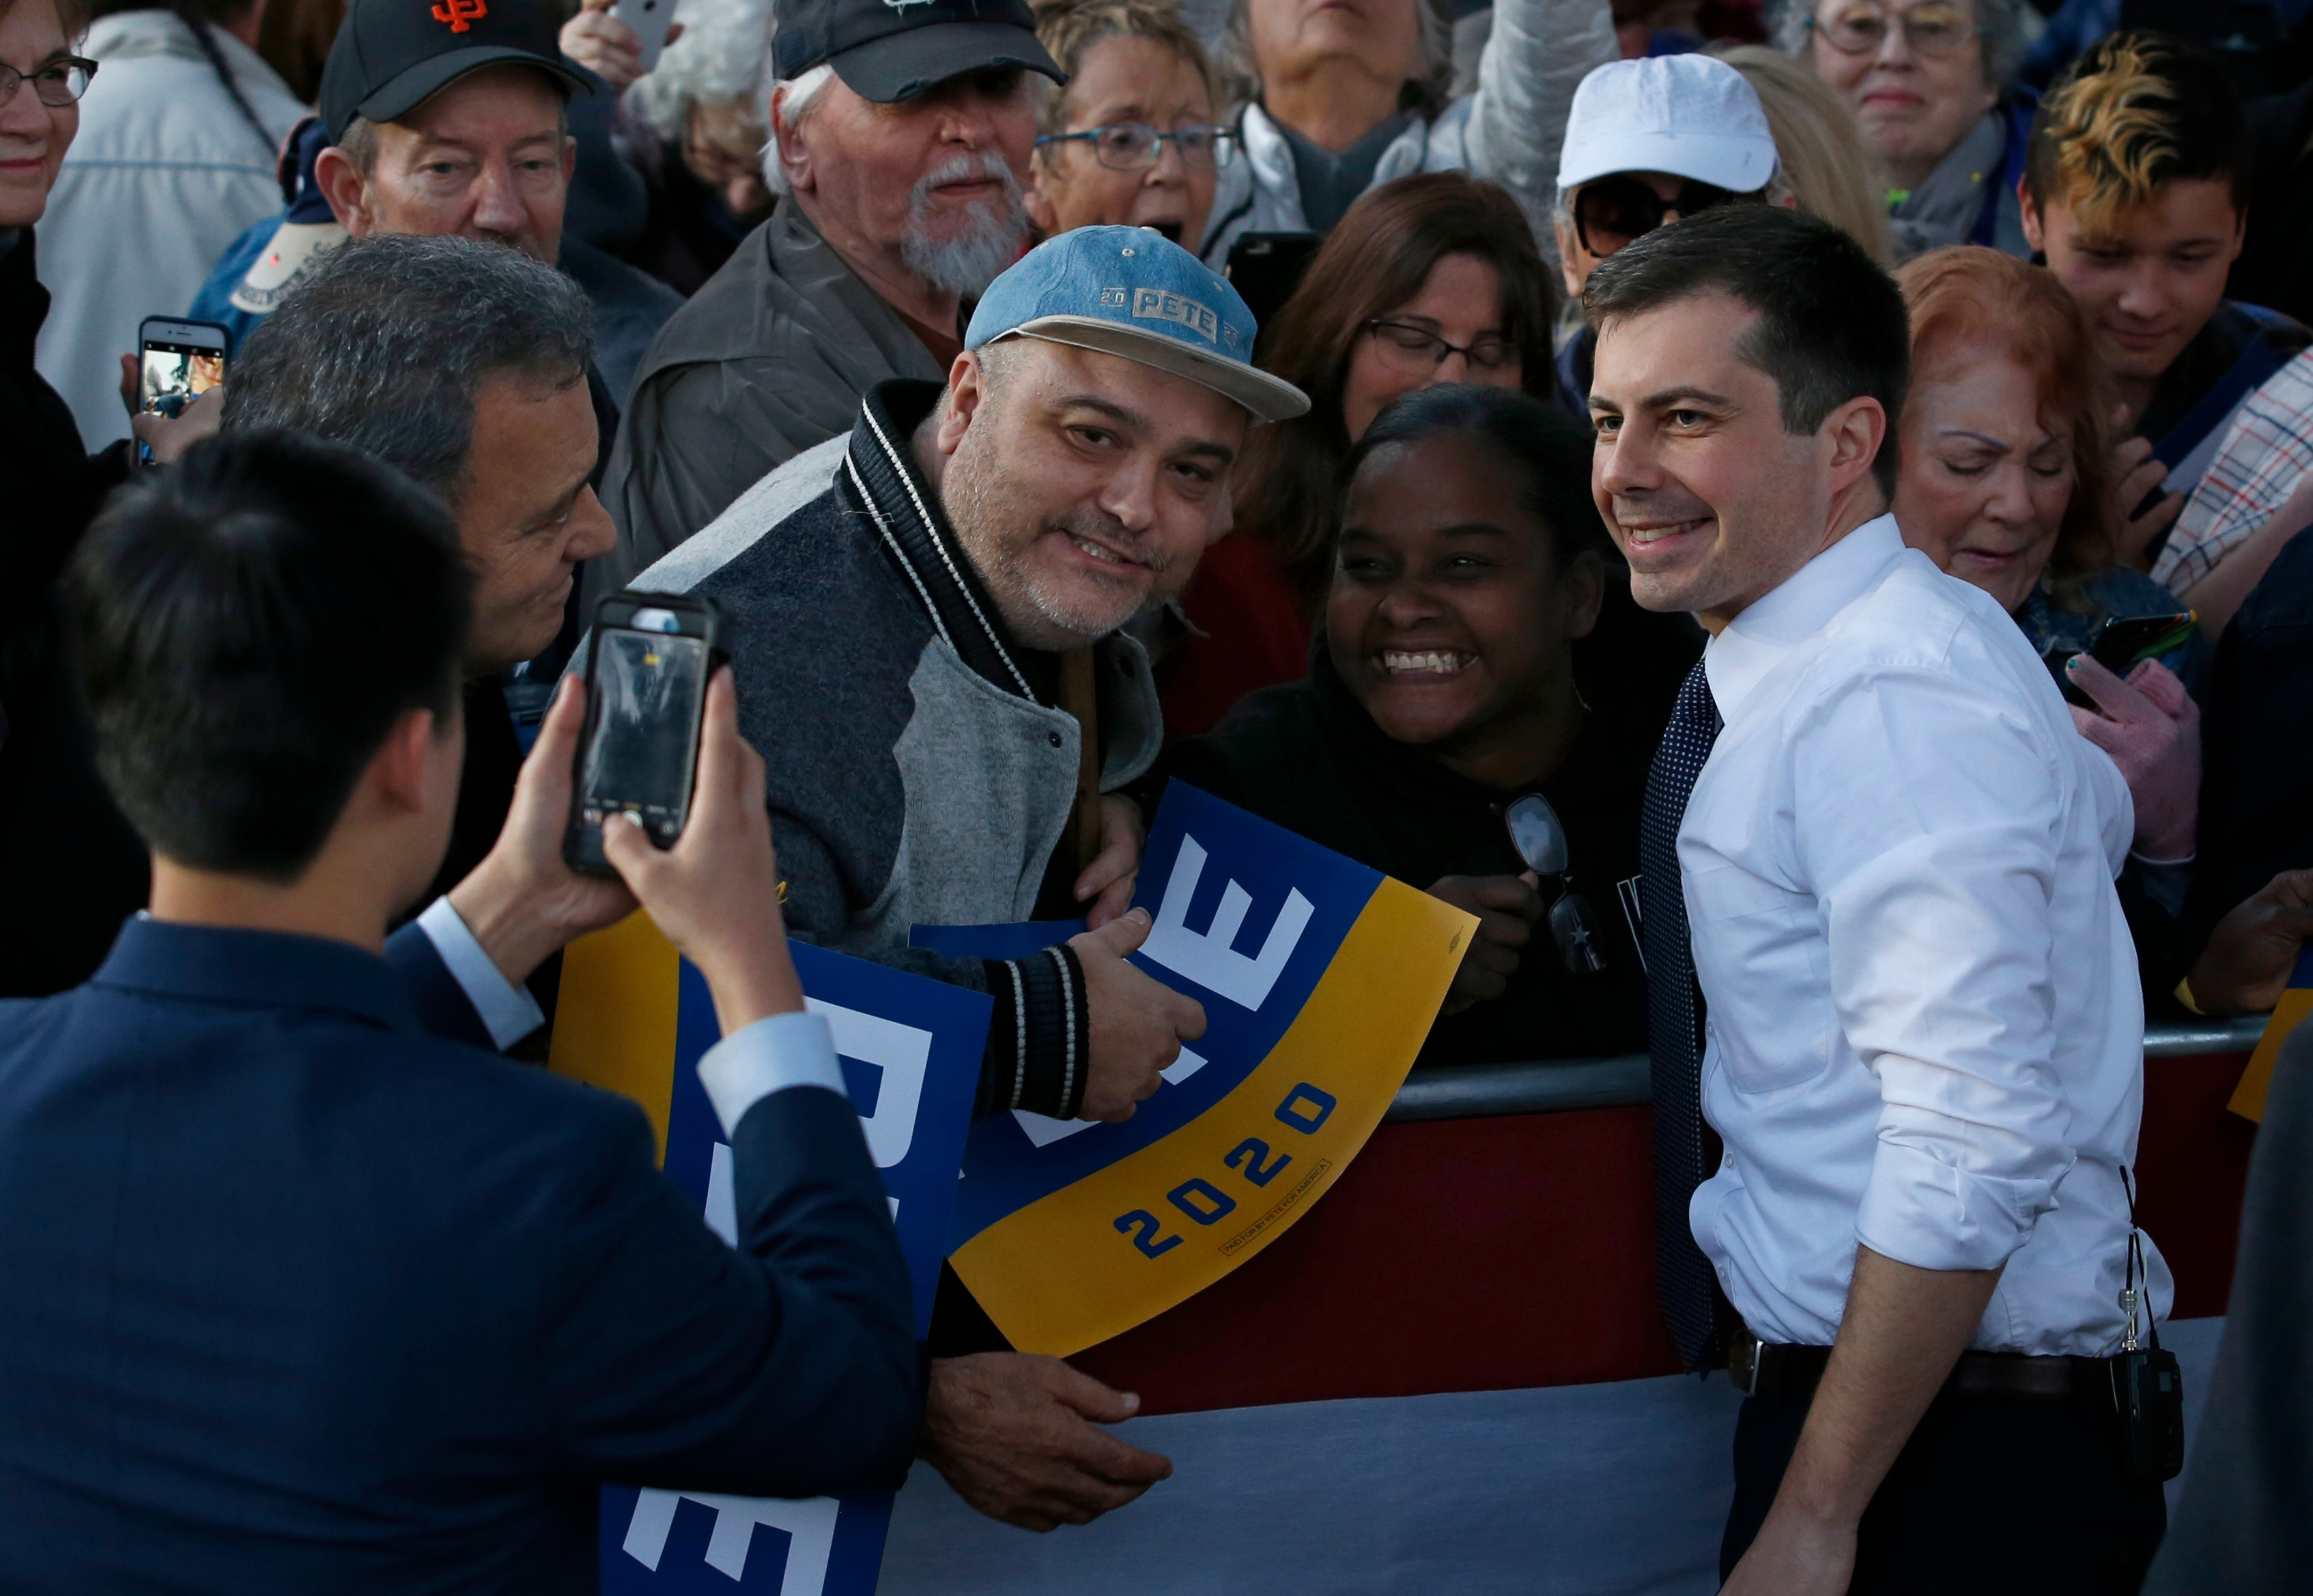 Democratic presidential candidate and former South Bend Mayor Pete Buttigieg poses for photos with supporters during a town hall rally in Sacramento, Californa.